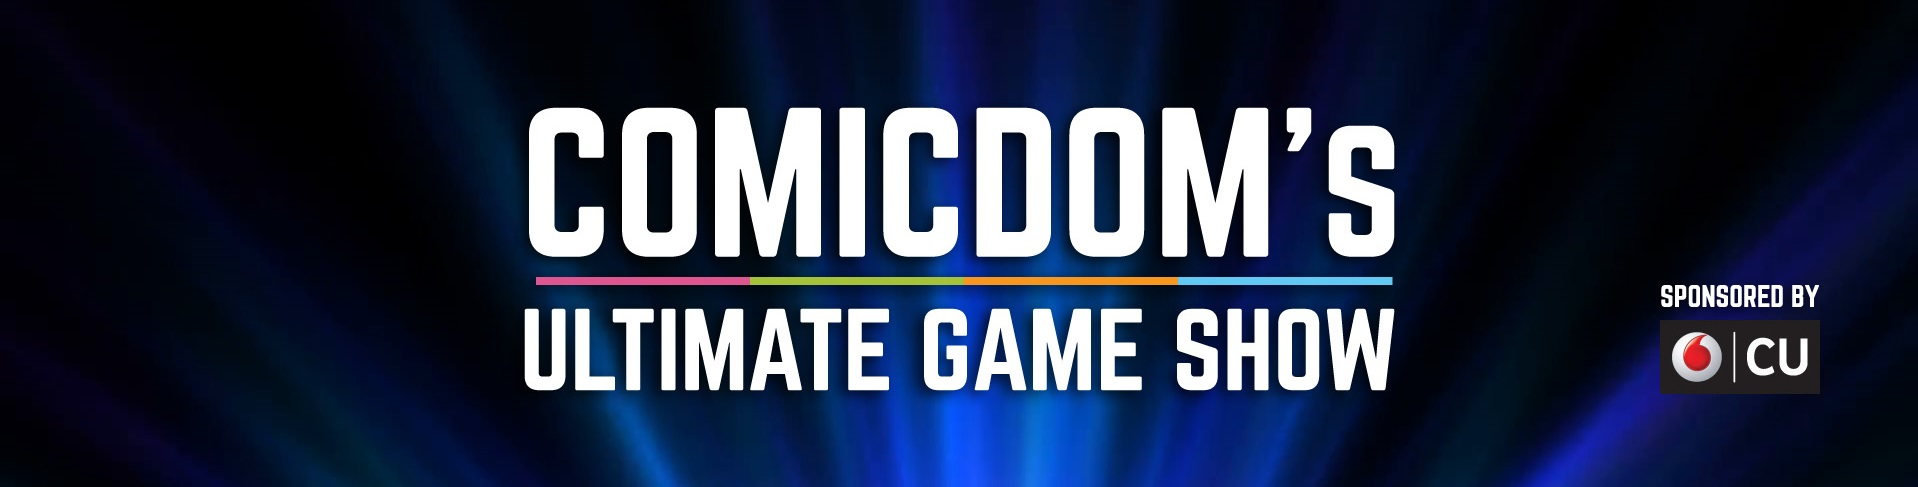 Comicdom Con Athens 2018 - Ultimate Game Show